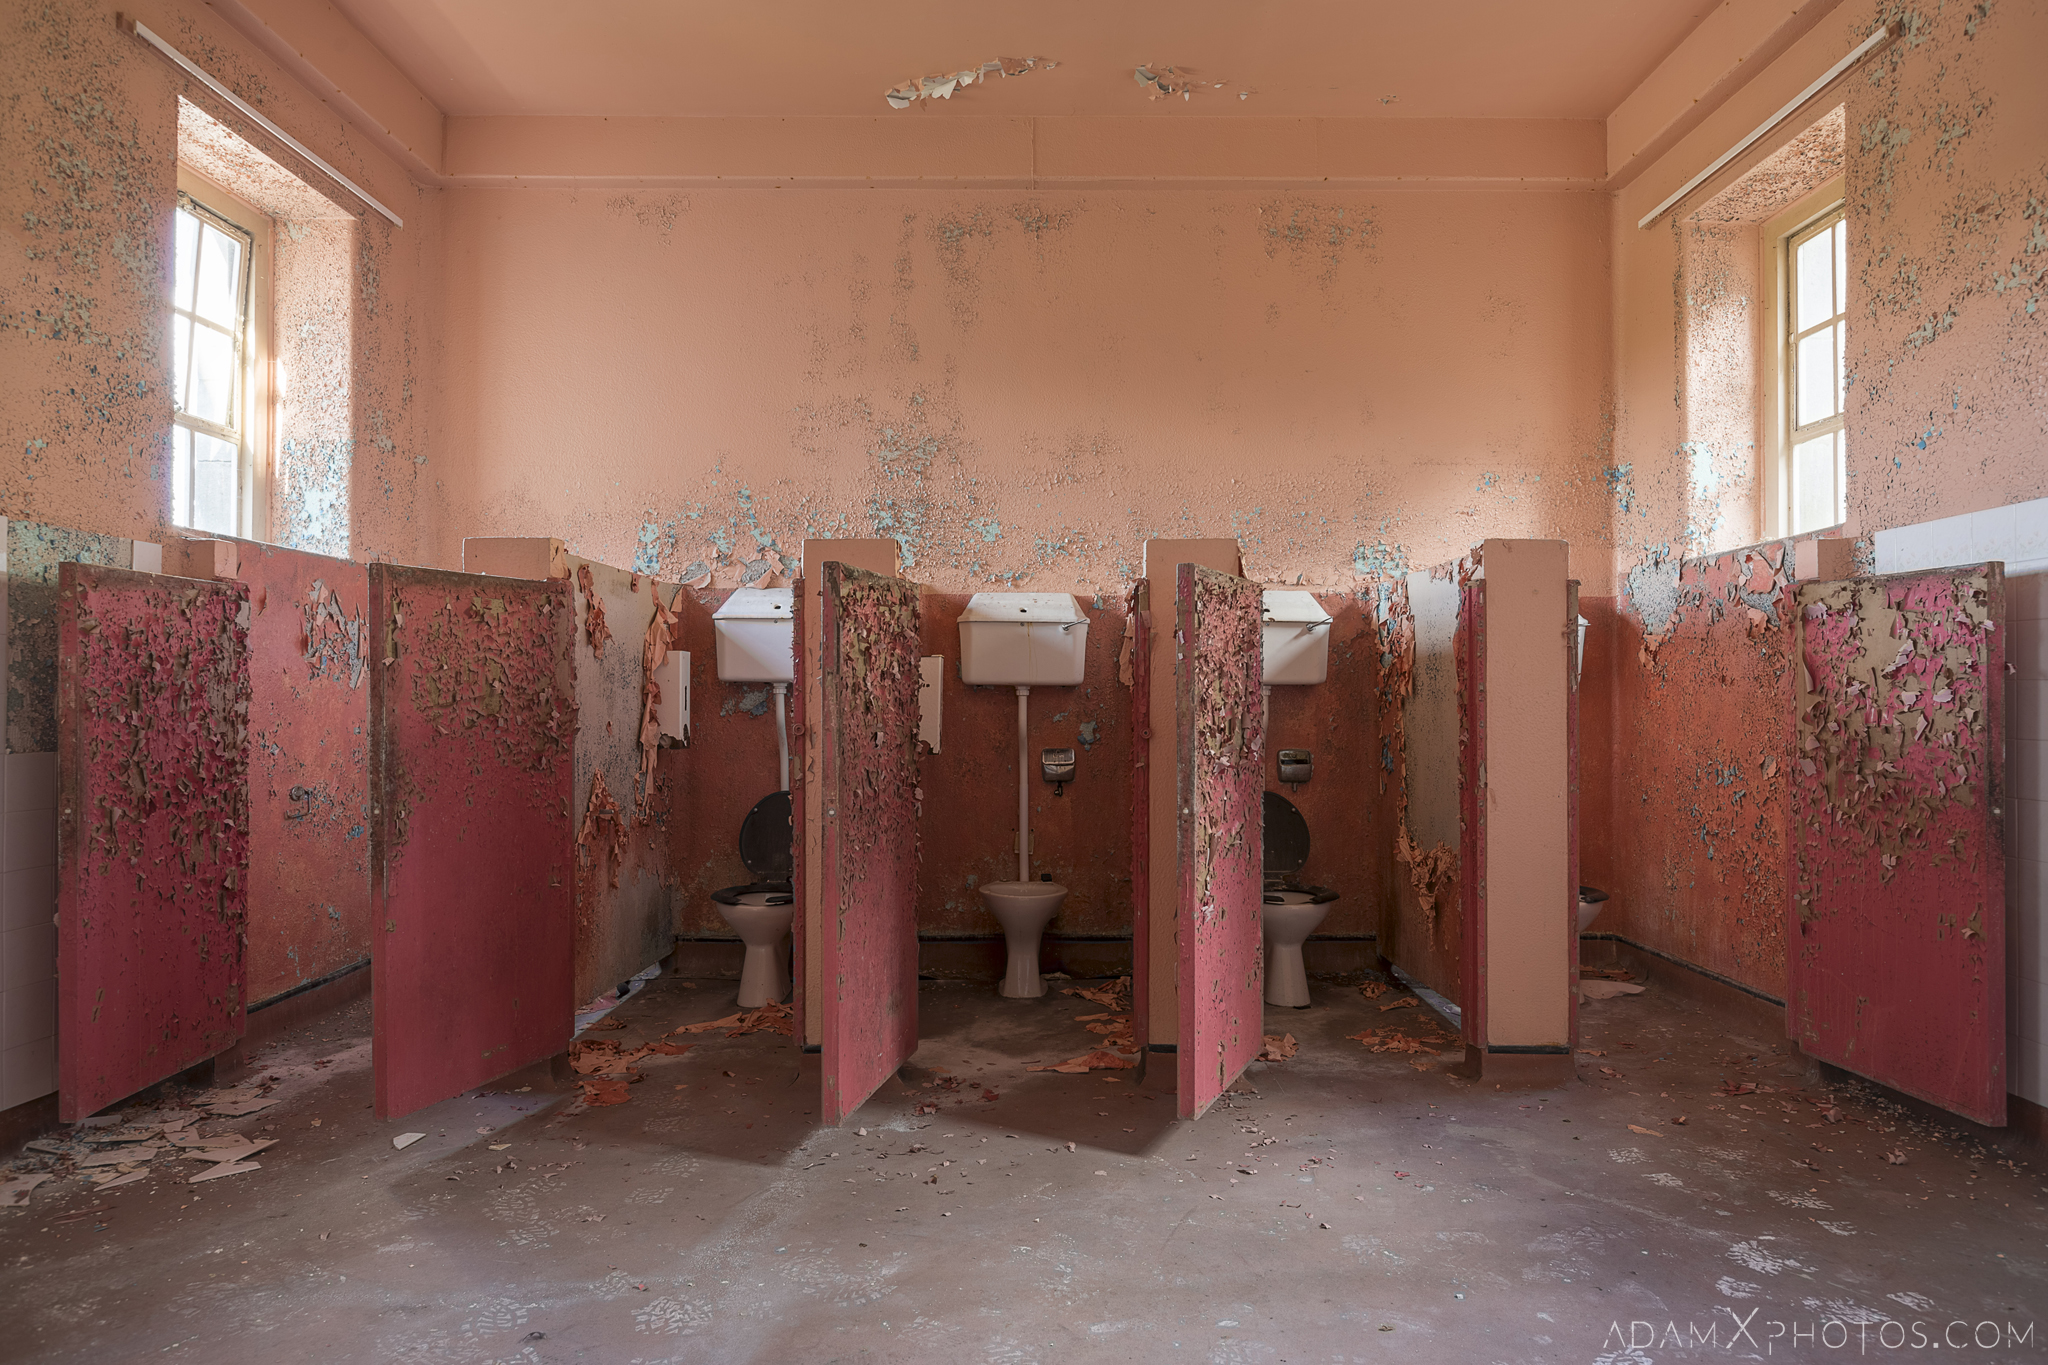 toilets bathroom pink peeling paint Connacht District Lunatic Asylum St Brigid's Hospital Adam X Urbex Urban Exploration Ireland Ballinasloe Access 2017 Abandoned decay lost forgotten derelict location creepy haunting eerie